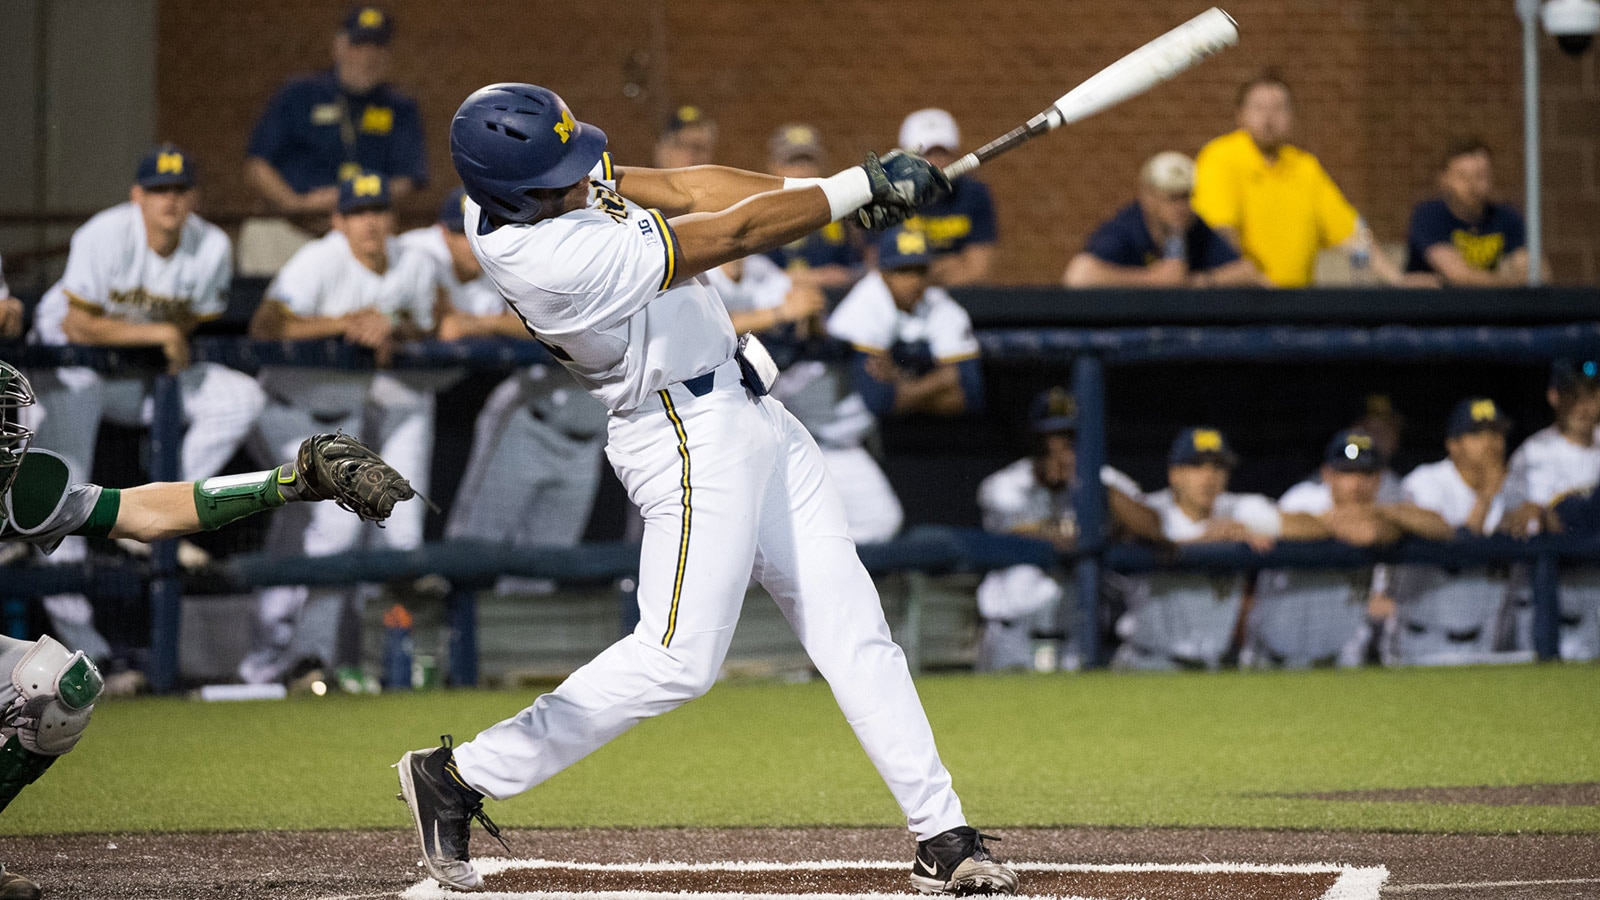 College baseball: From walk-on status to Bo Jackson comparisons